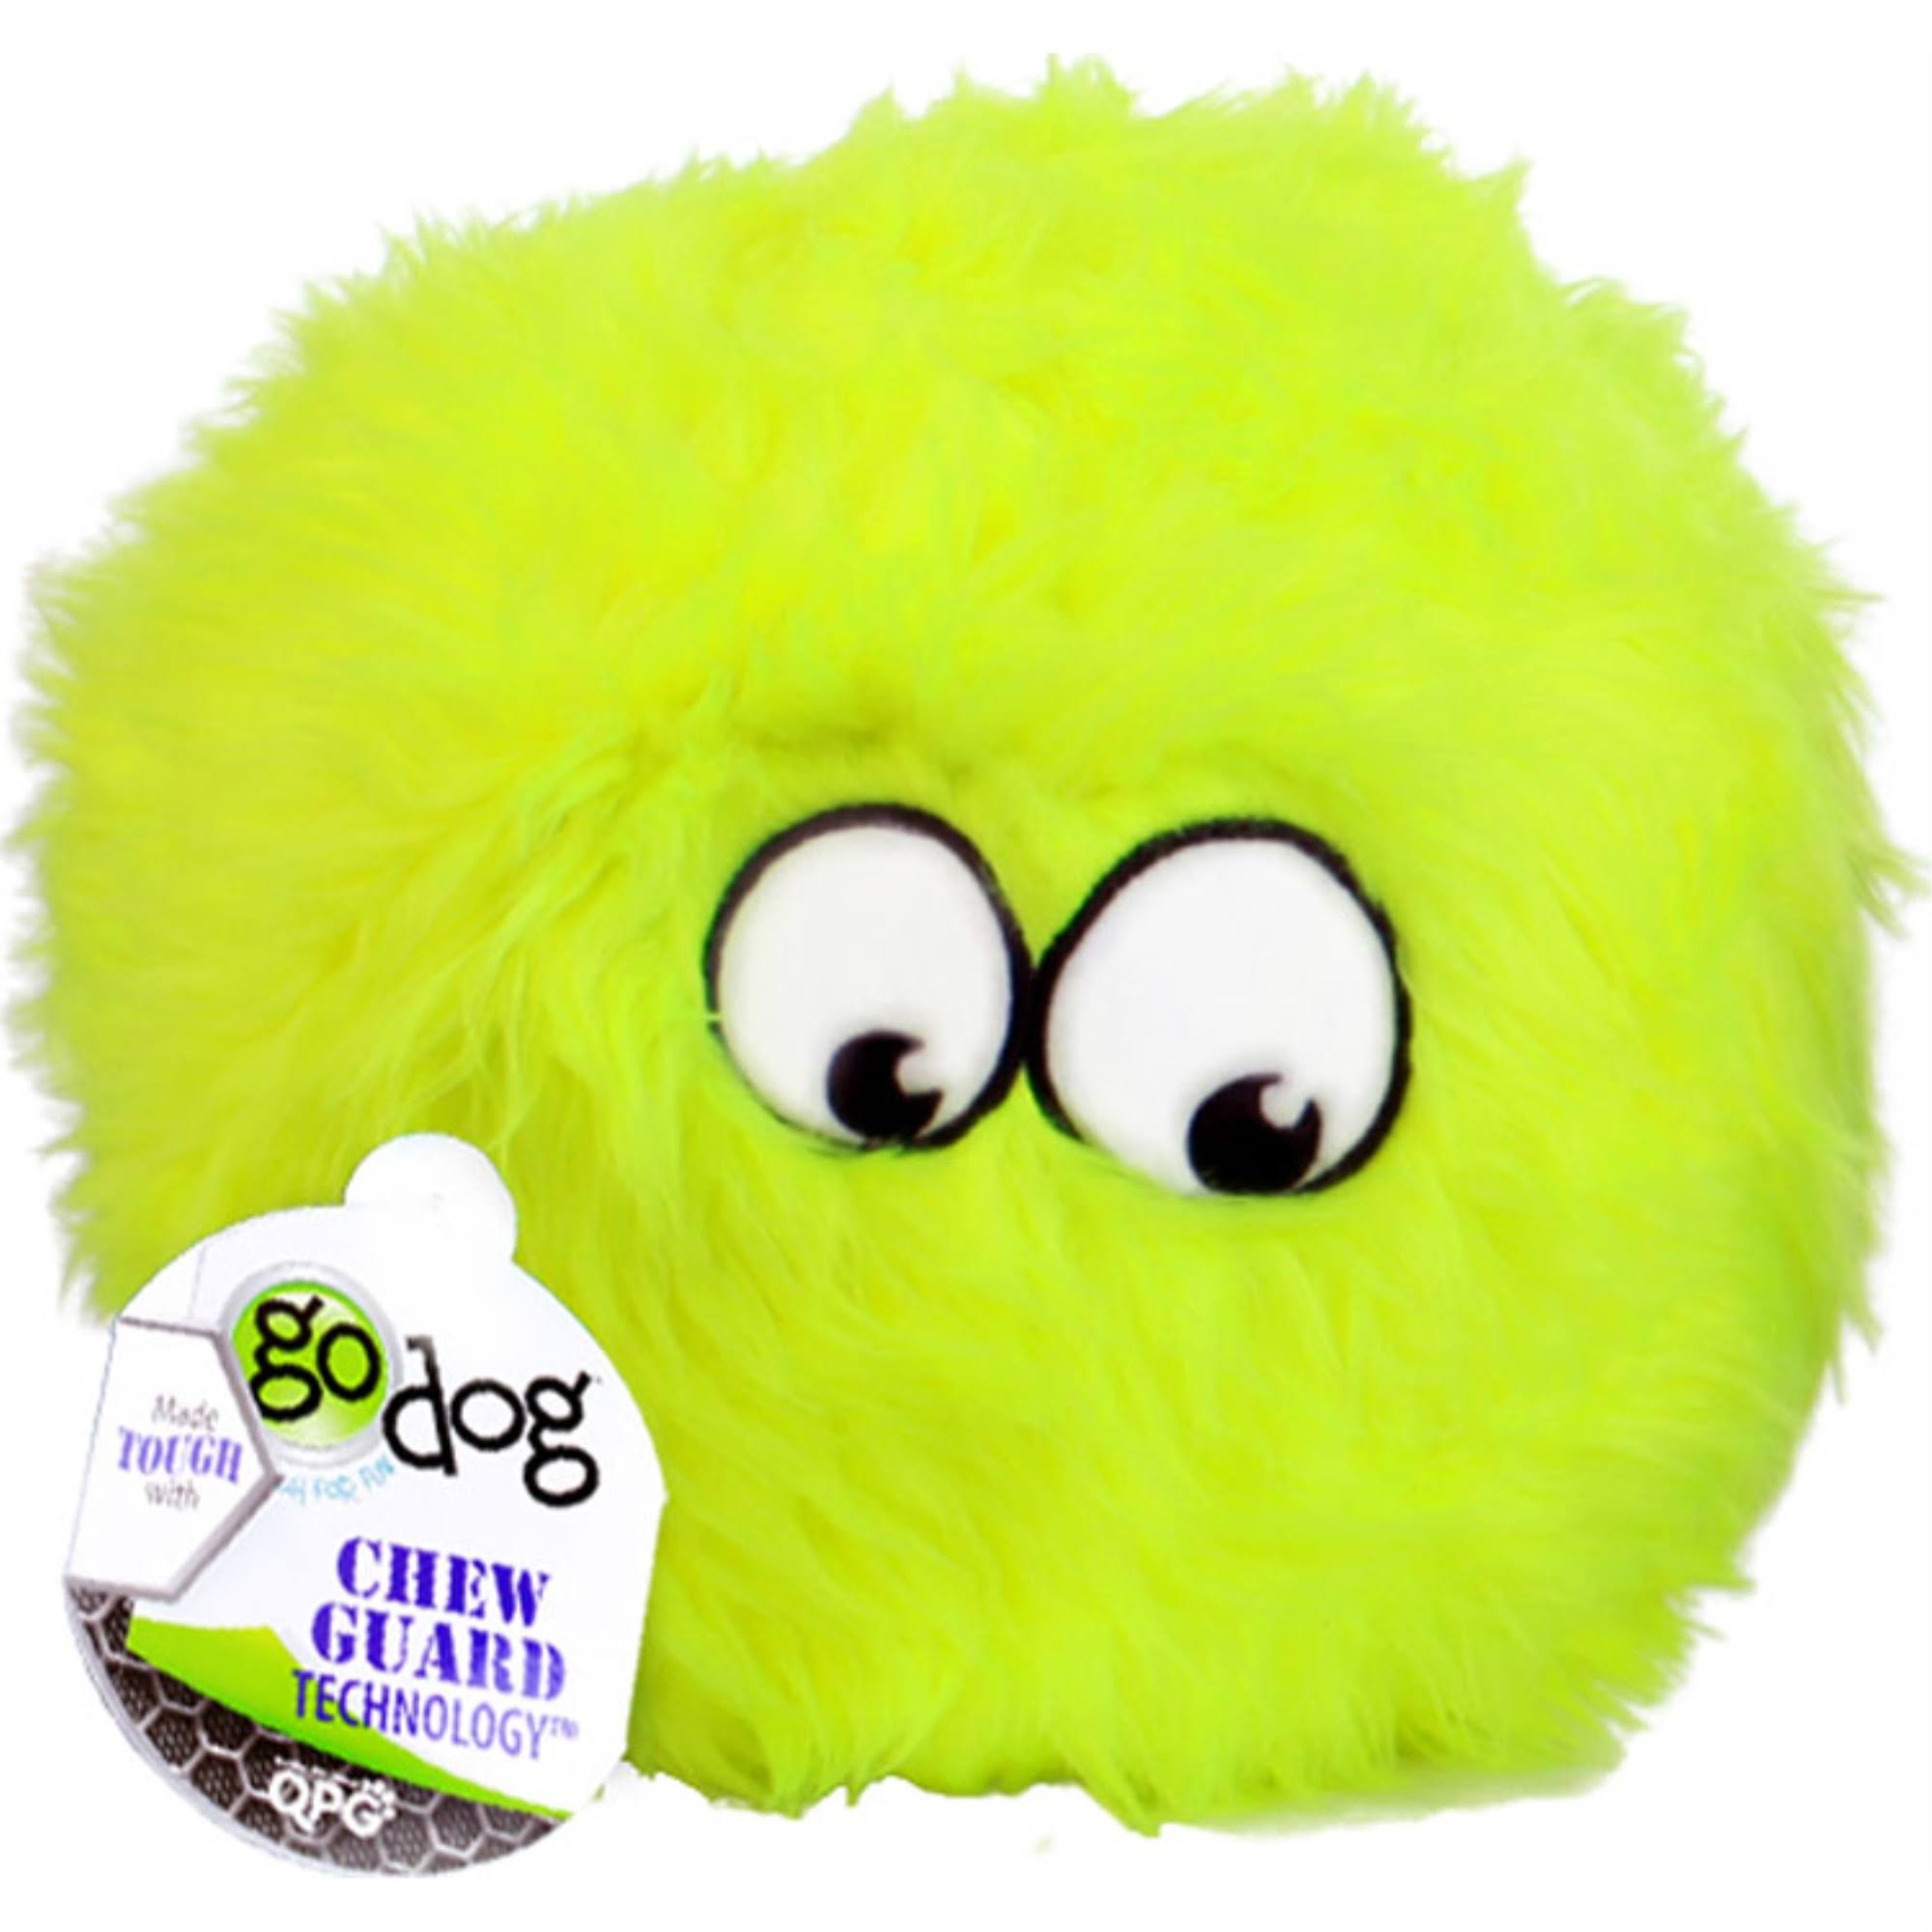 Godog Furballz Dog Toy - Lime, Small